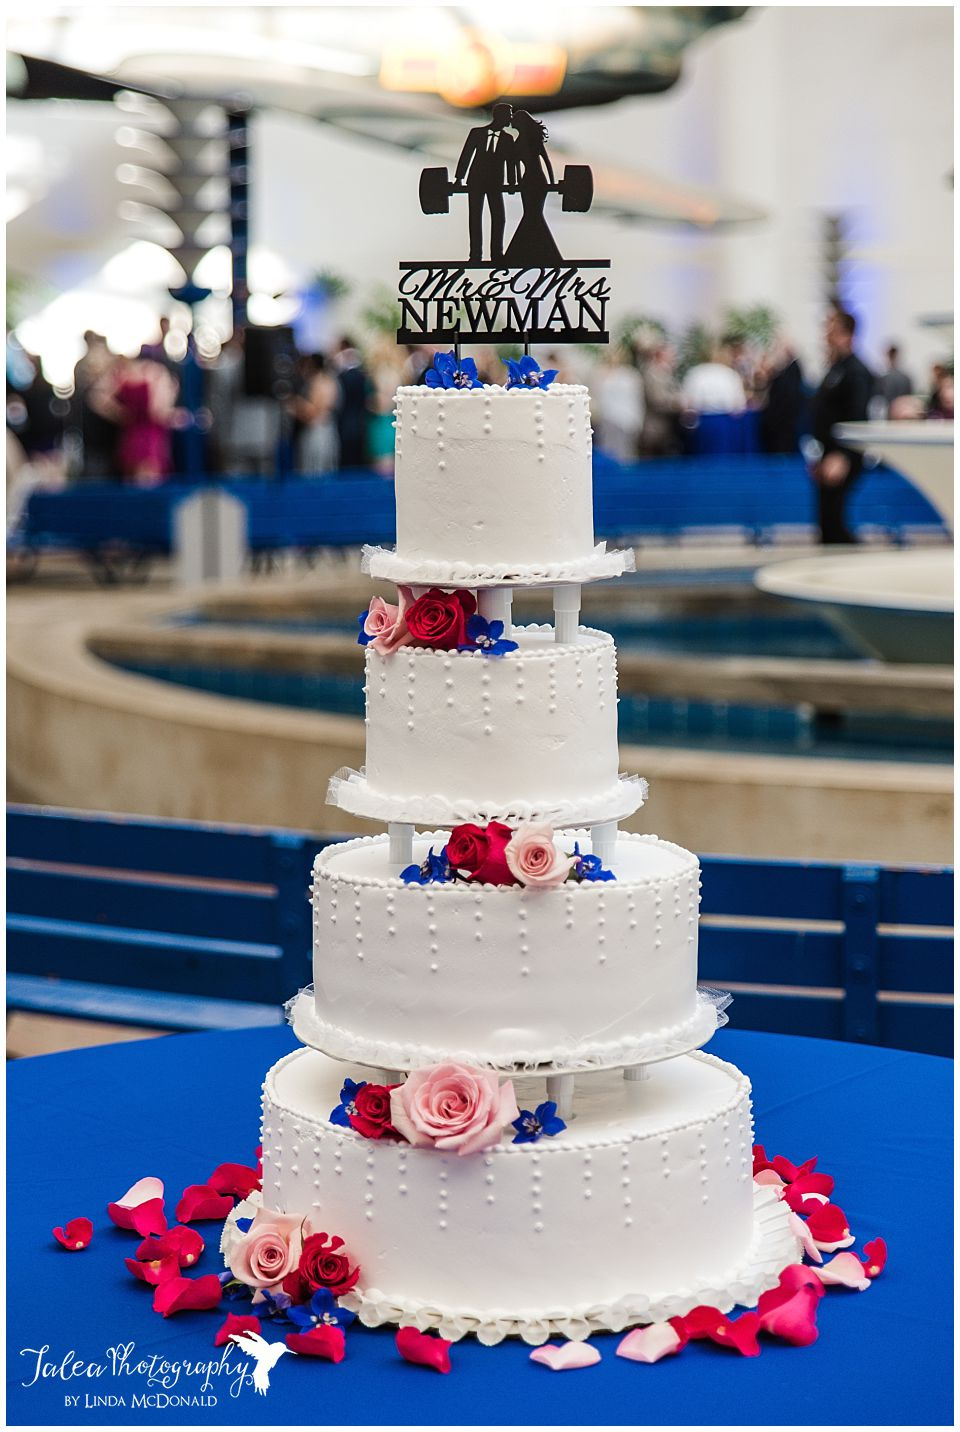 full view of wedding cake with red pink blue flowers